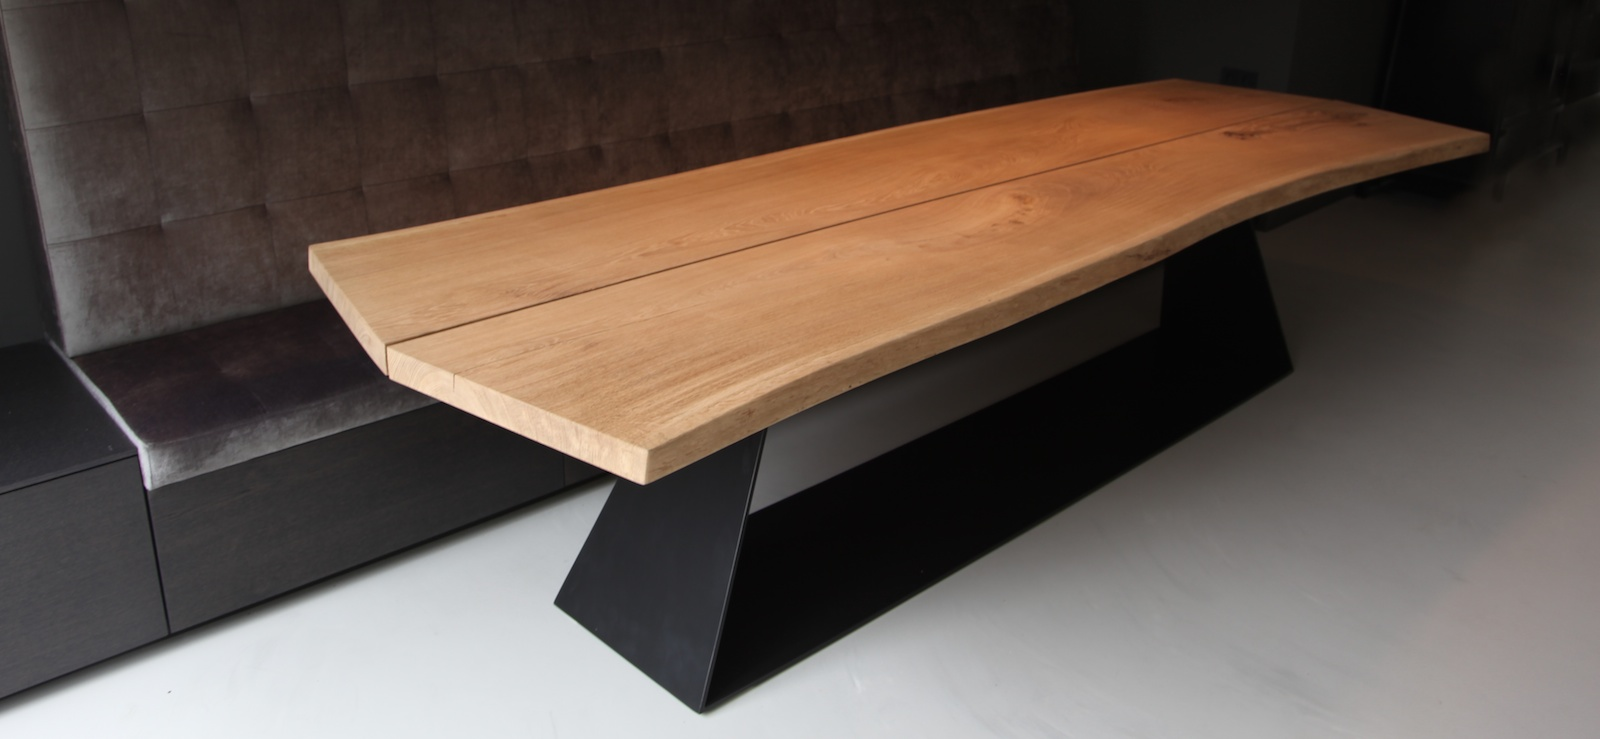 Eetkamertafel Design Hout : 301 Moved Permanently